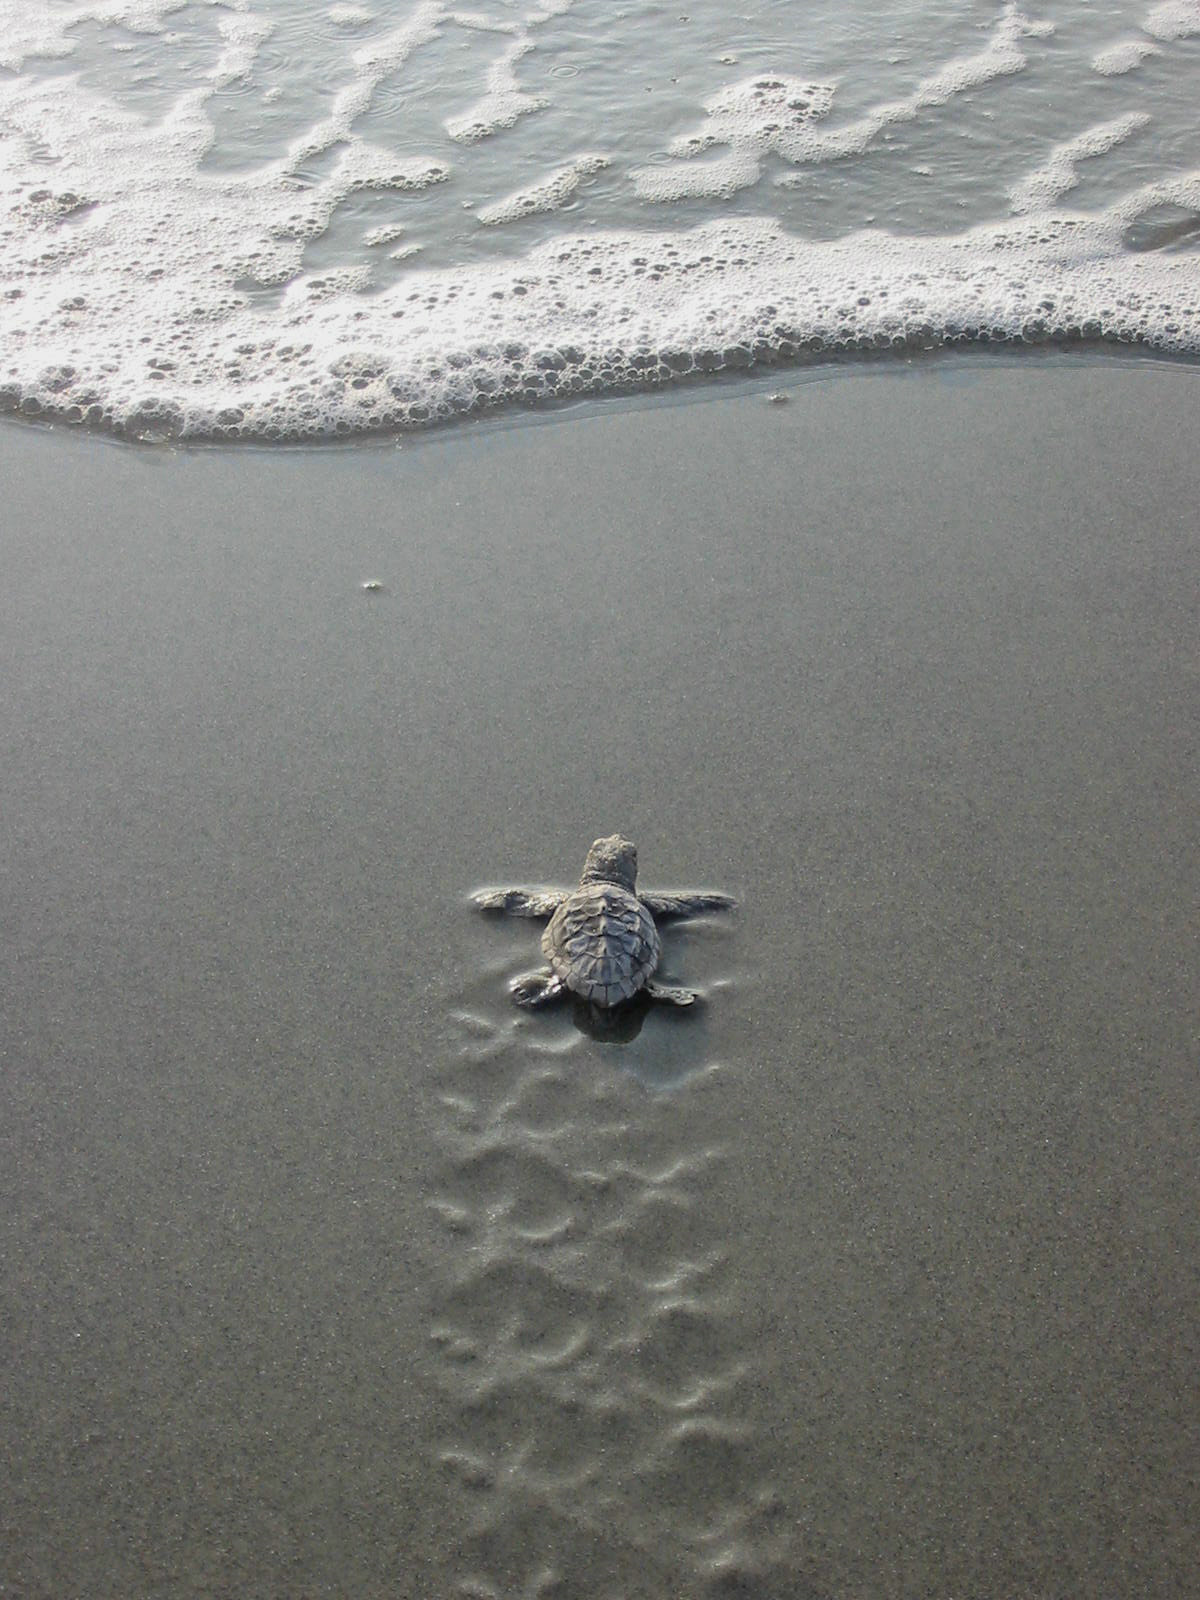 death-by-lulz:  thefrogman: Baby sea turtle leaving DeBordieu Beach.  This post has been featured on a 1000notes.com blog.